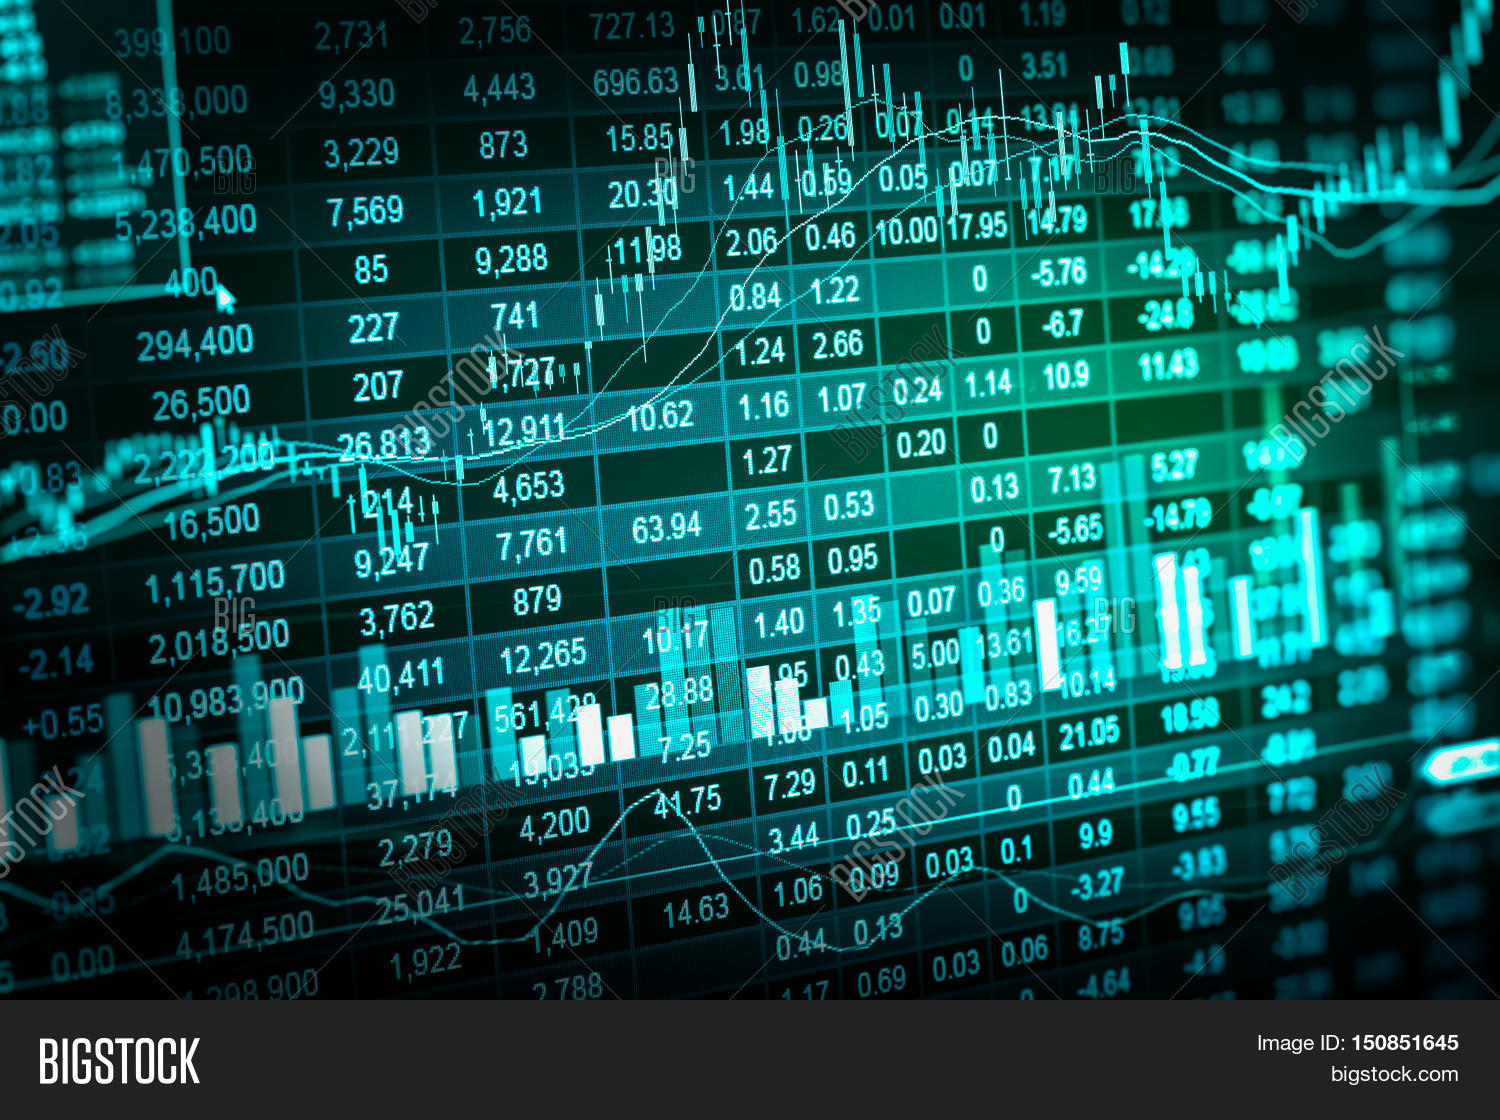 Financial Stock Market Image & Photo (Free Trial) | Bigstock